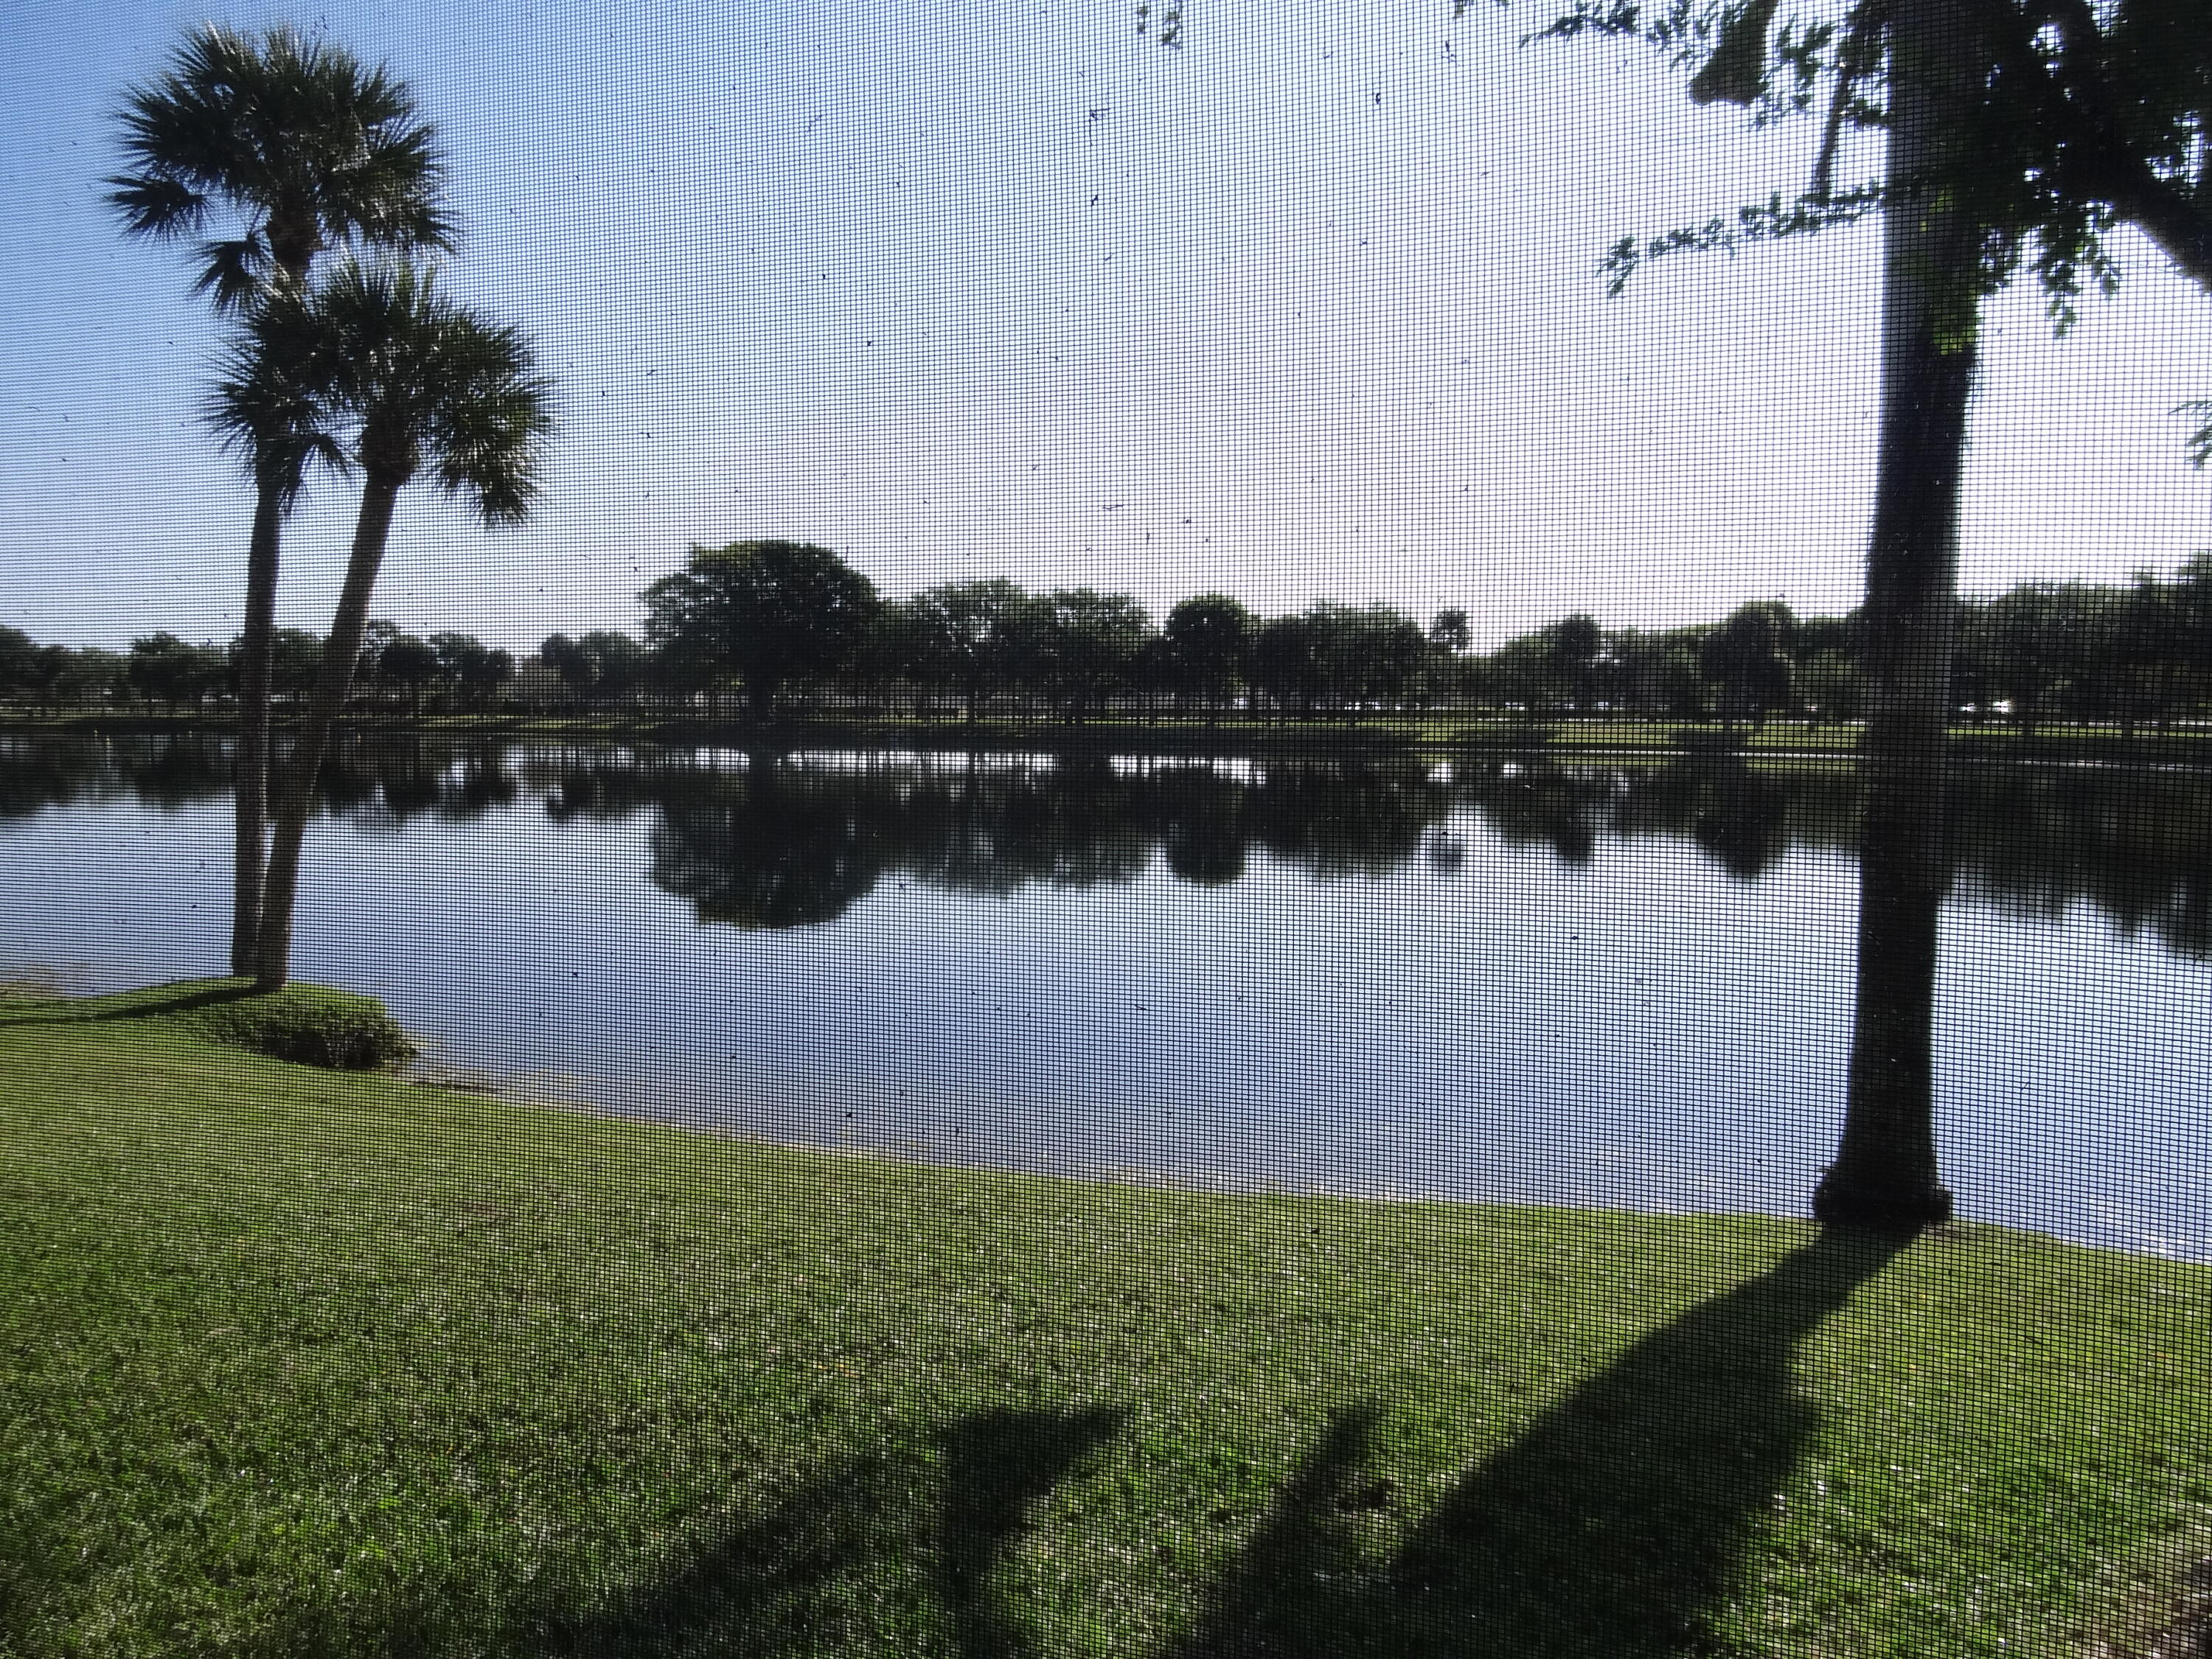 Awesome extra wide lake view in this 3/2/2 house at the Lake Catherine community. Screened pool and patio right on the lake. Close to major Hwy-s and Costco.